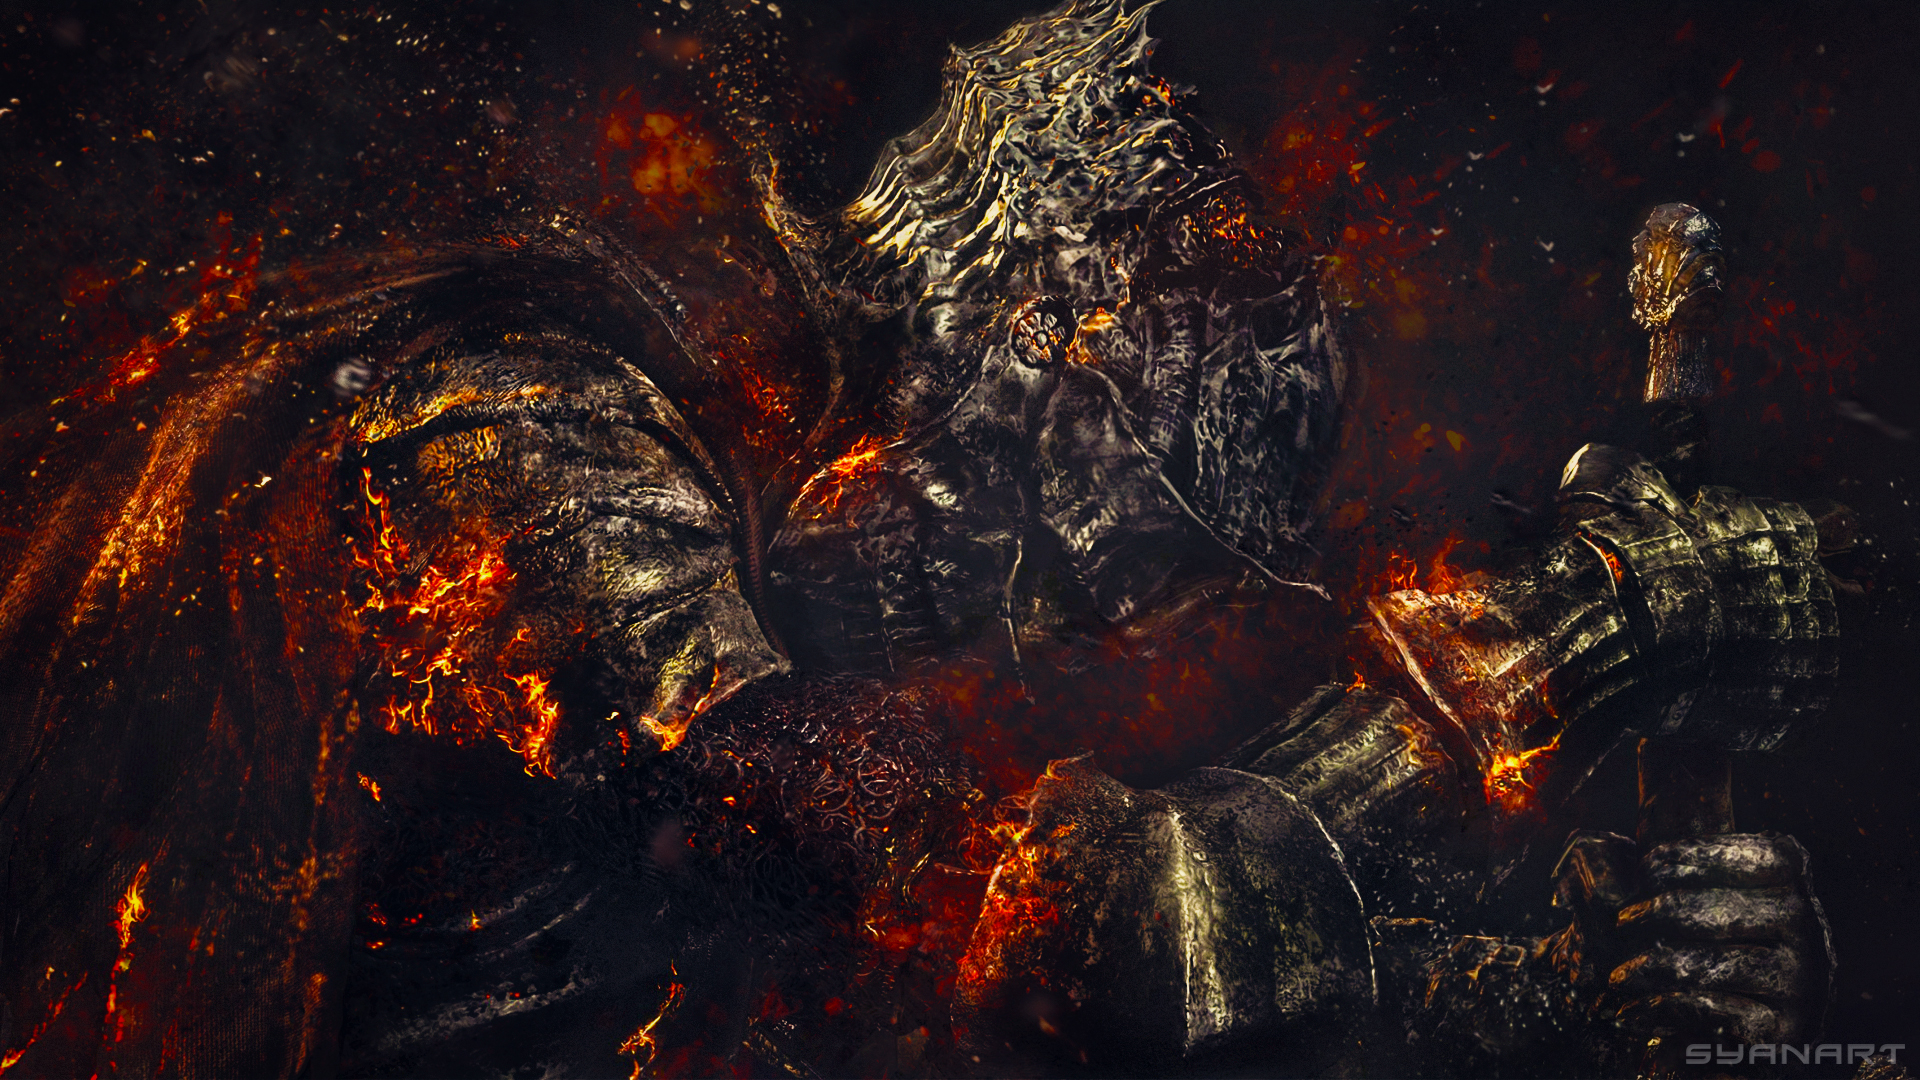 Dark Souls 3 Wallpapers For Android Is Cool Wallpapers